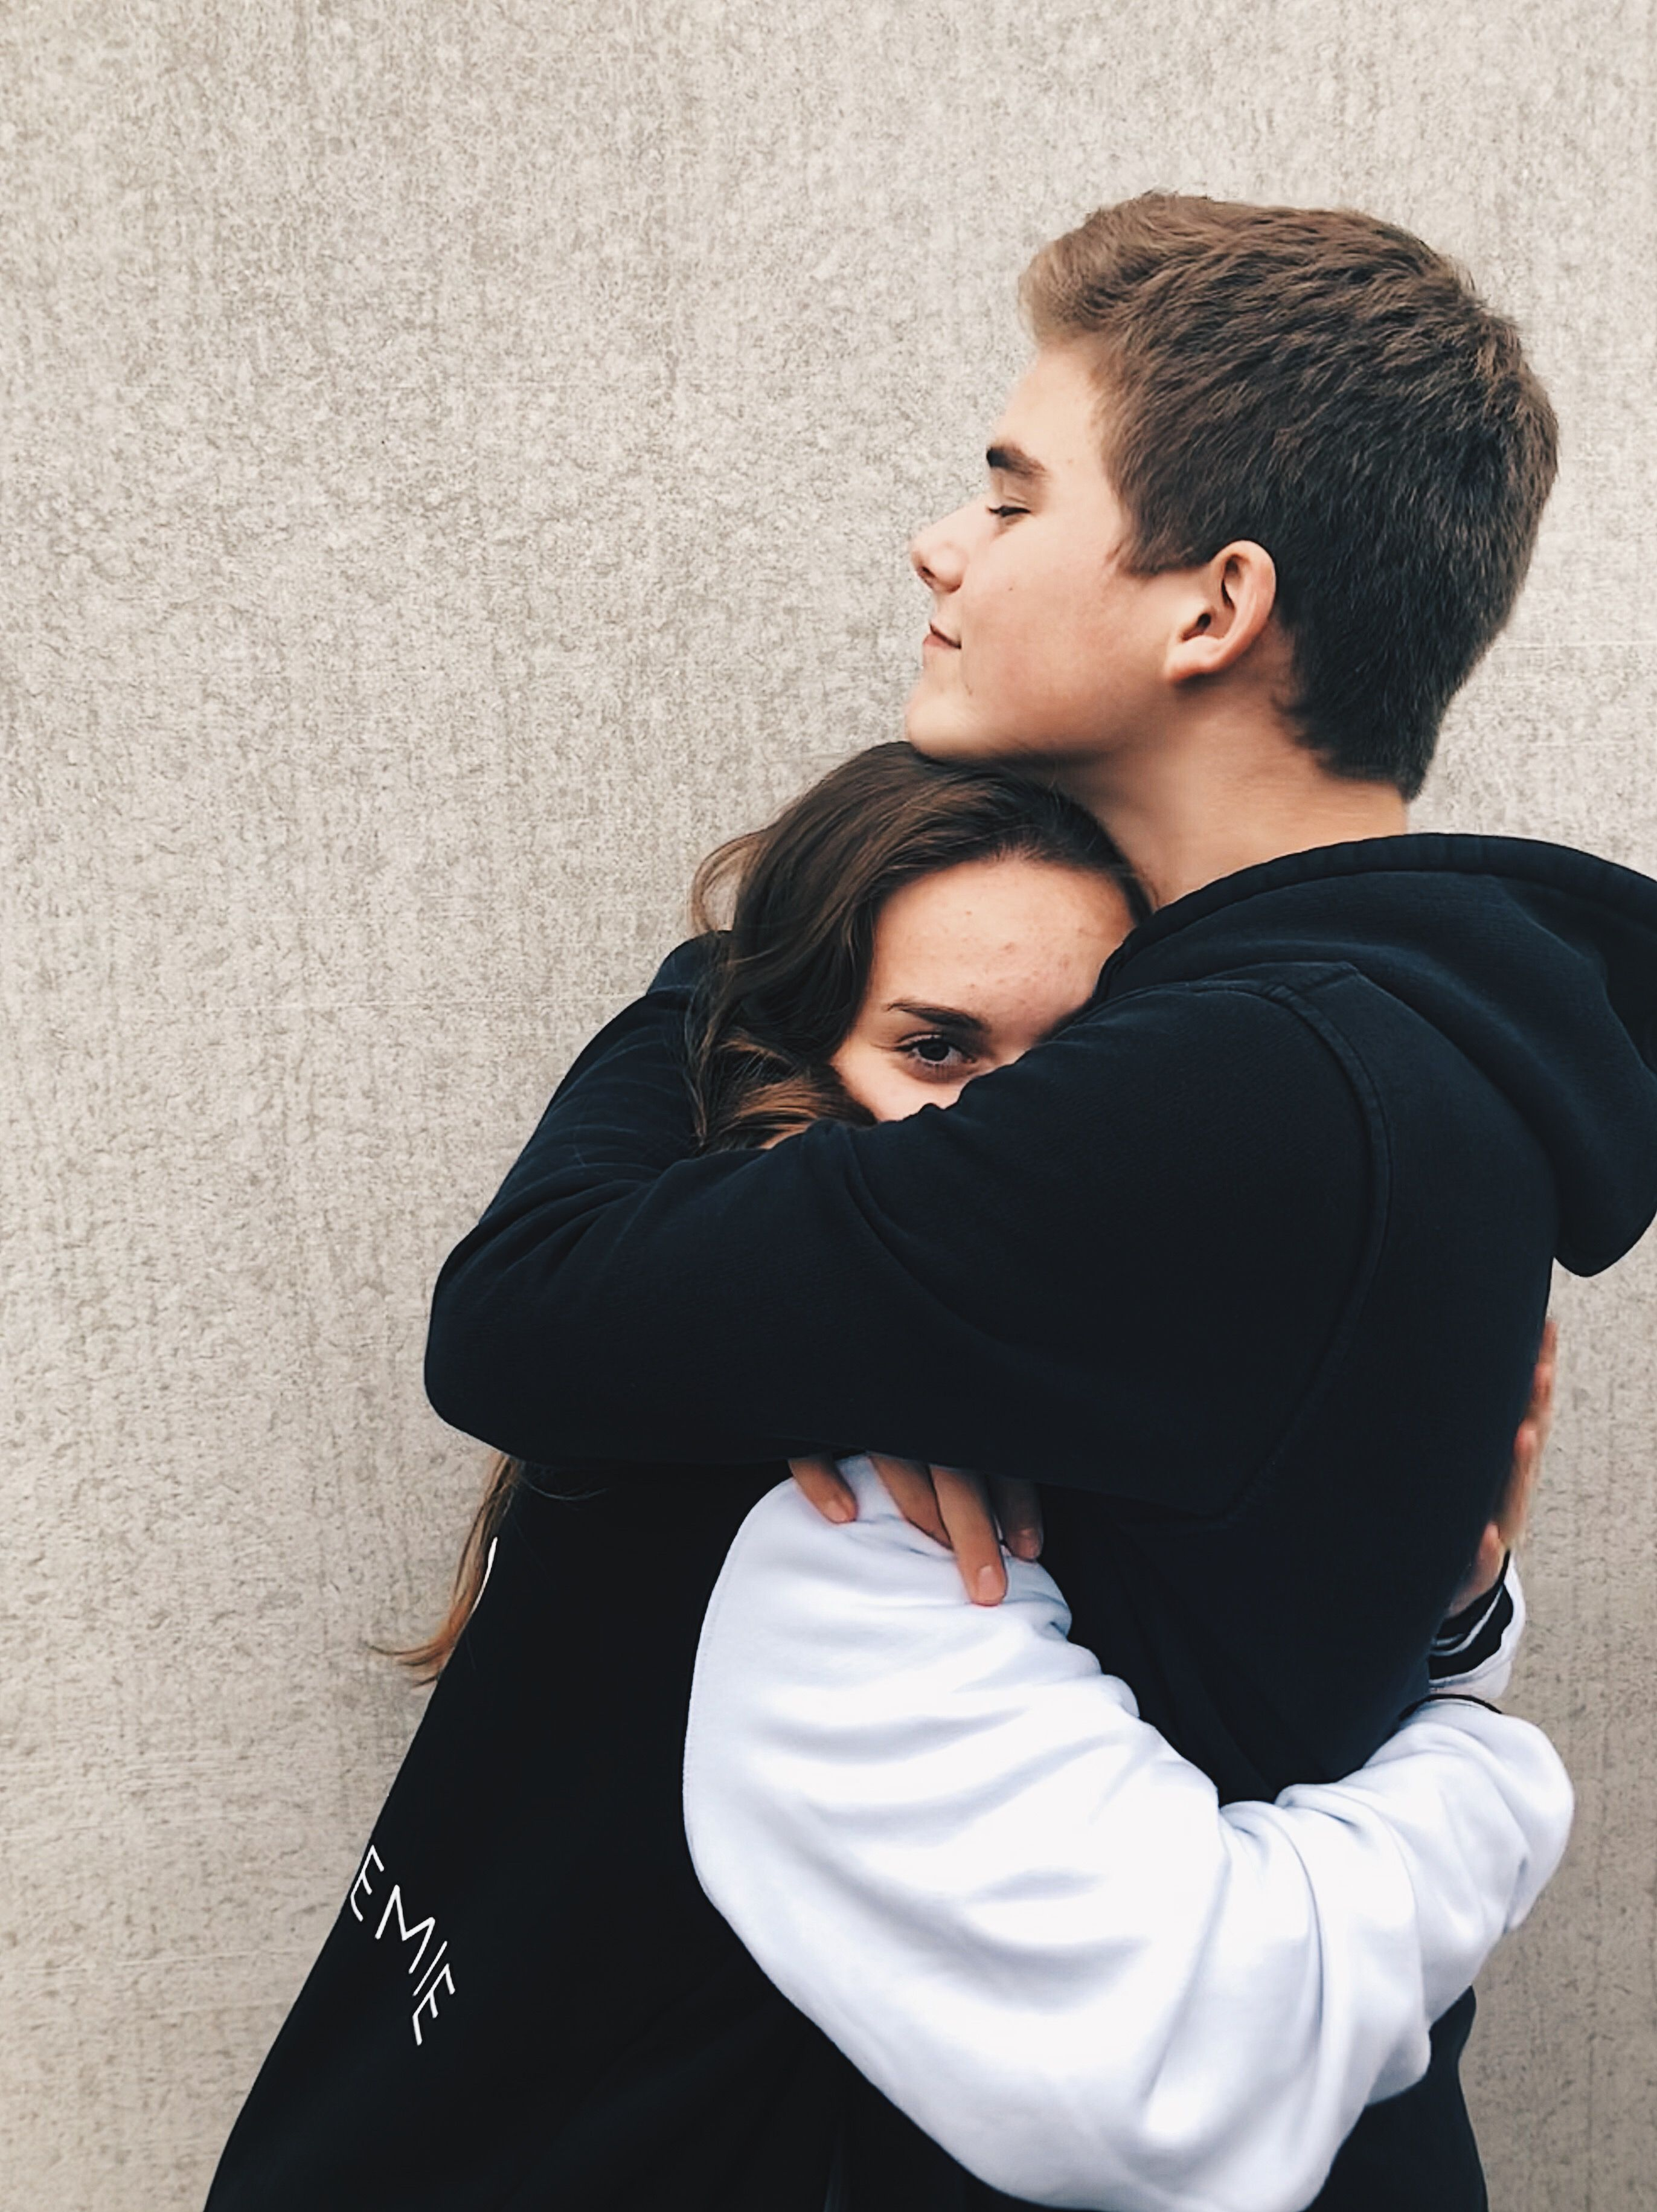 Pin By Sabique On Sabi Cute Couples Goals Tumblr Couples Relationship Goals Tumblr